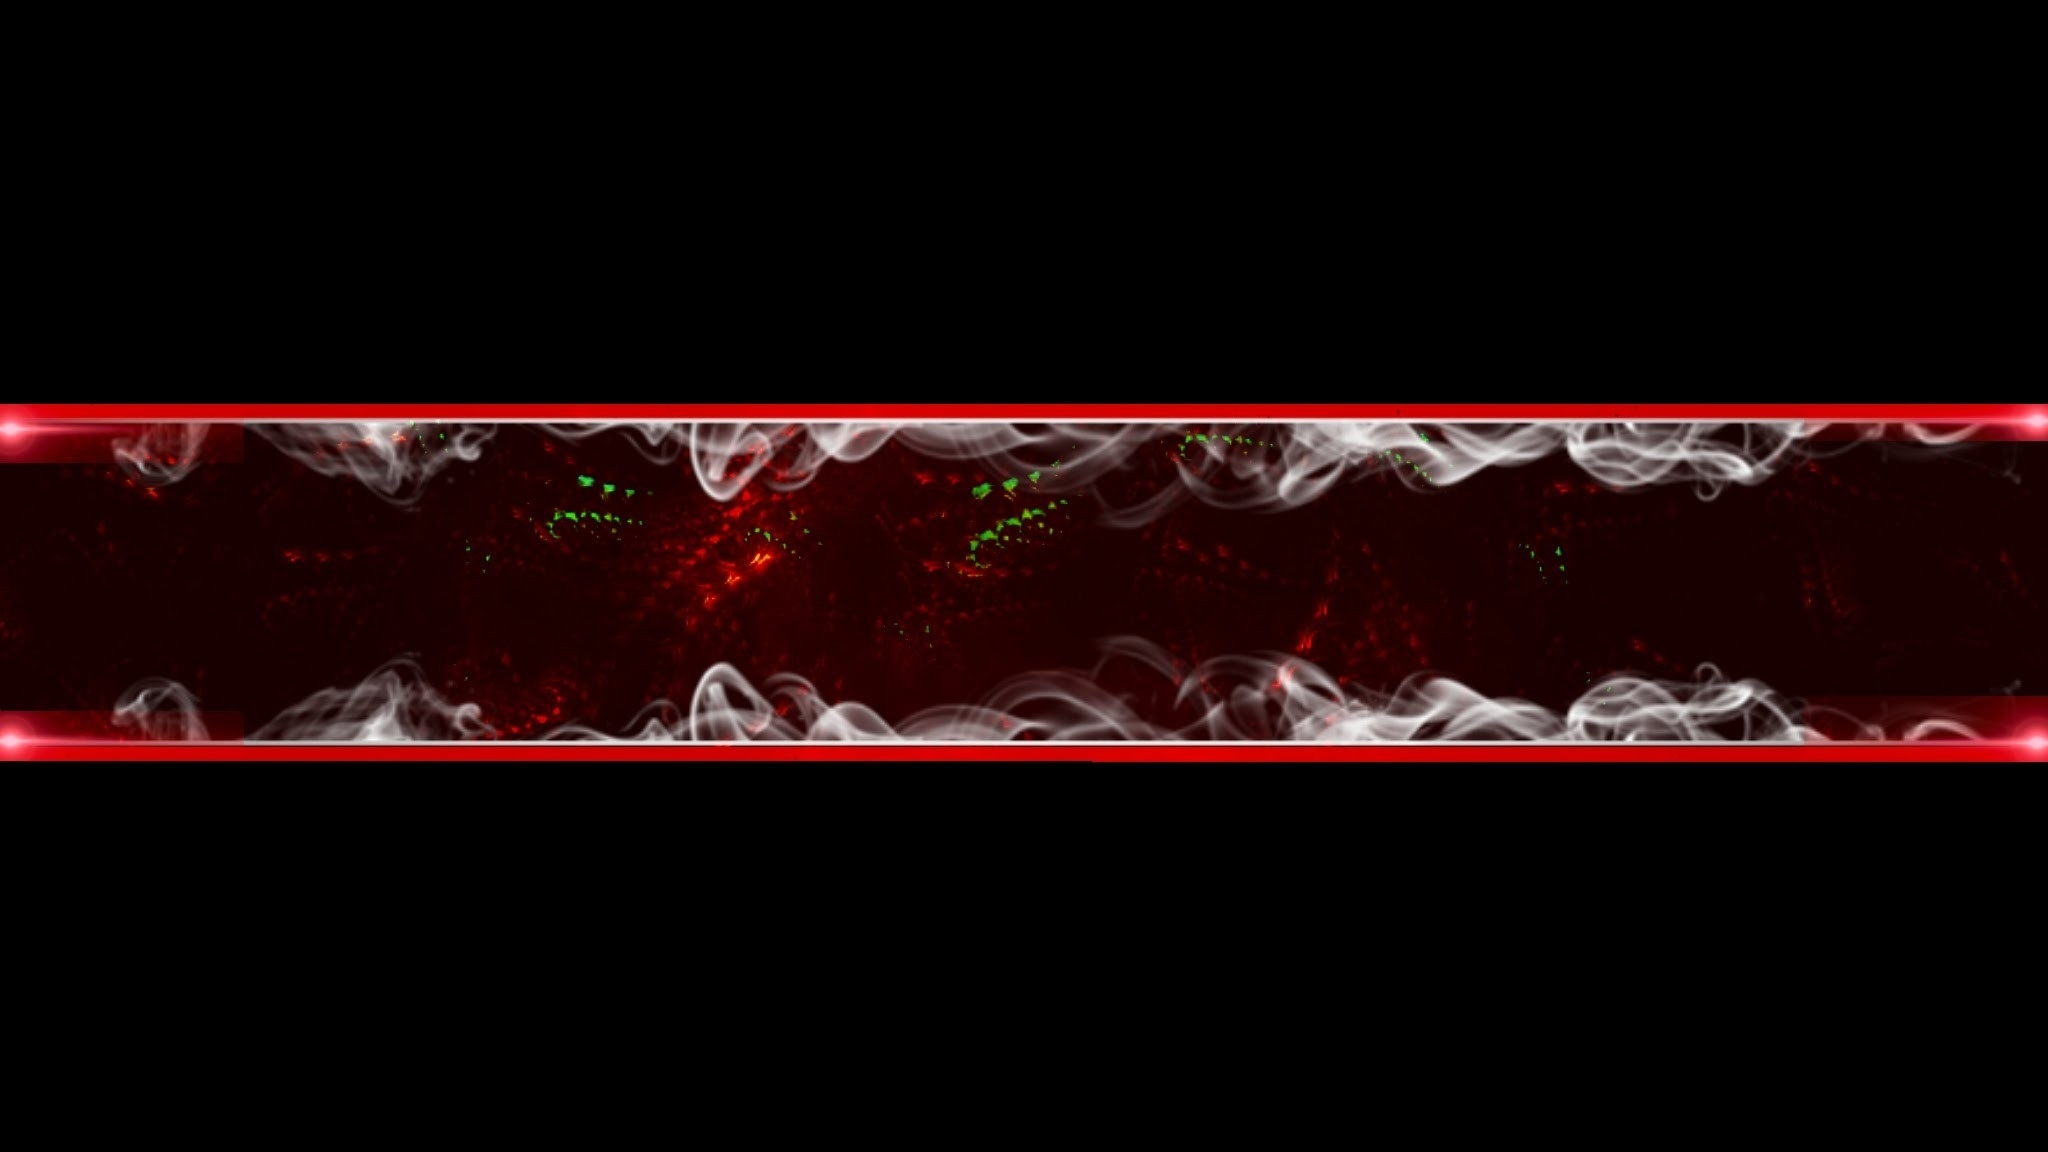 Cool Youtube Banner Templates No Text Banner Youtube Youtube Channel Art No Name 2048x1152 Download Hd Wallpaper Wallpapertip